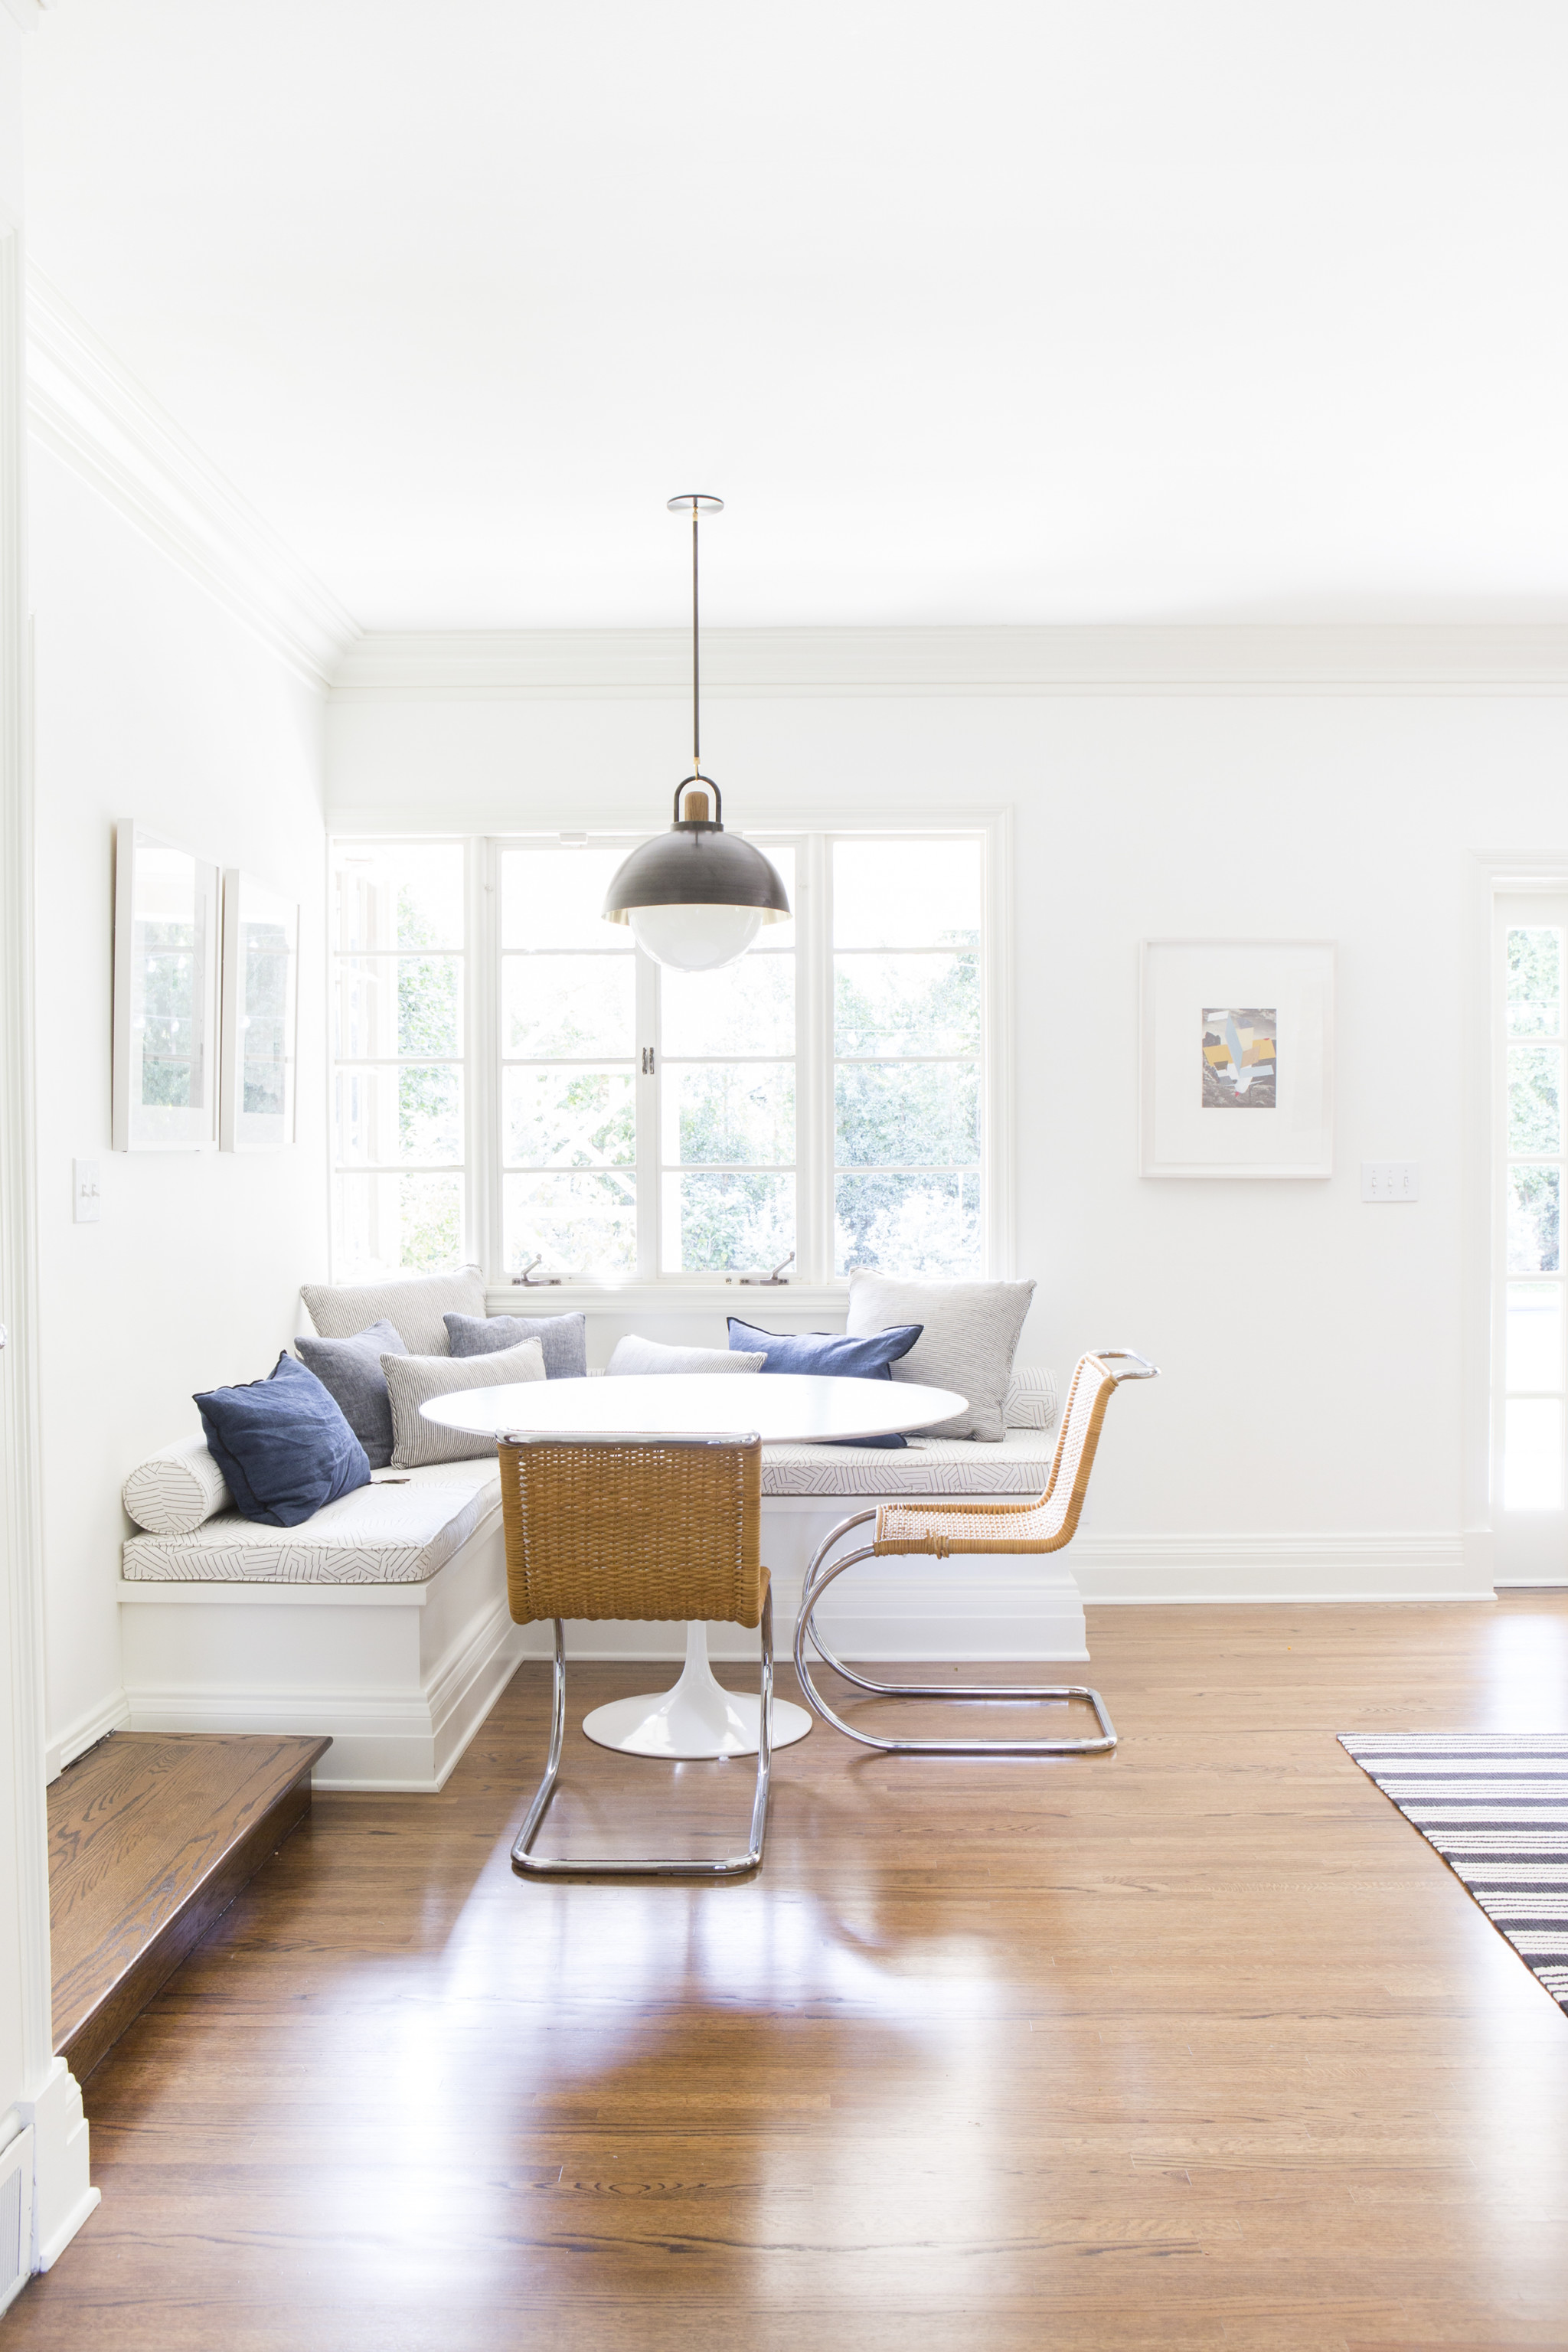 Ginny_Macdonald_Full-Design_Sunroom_Introduction_Sneak_Peek-1